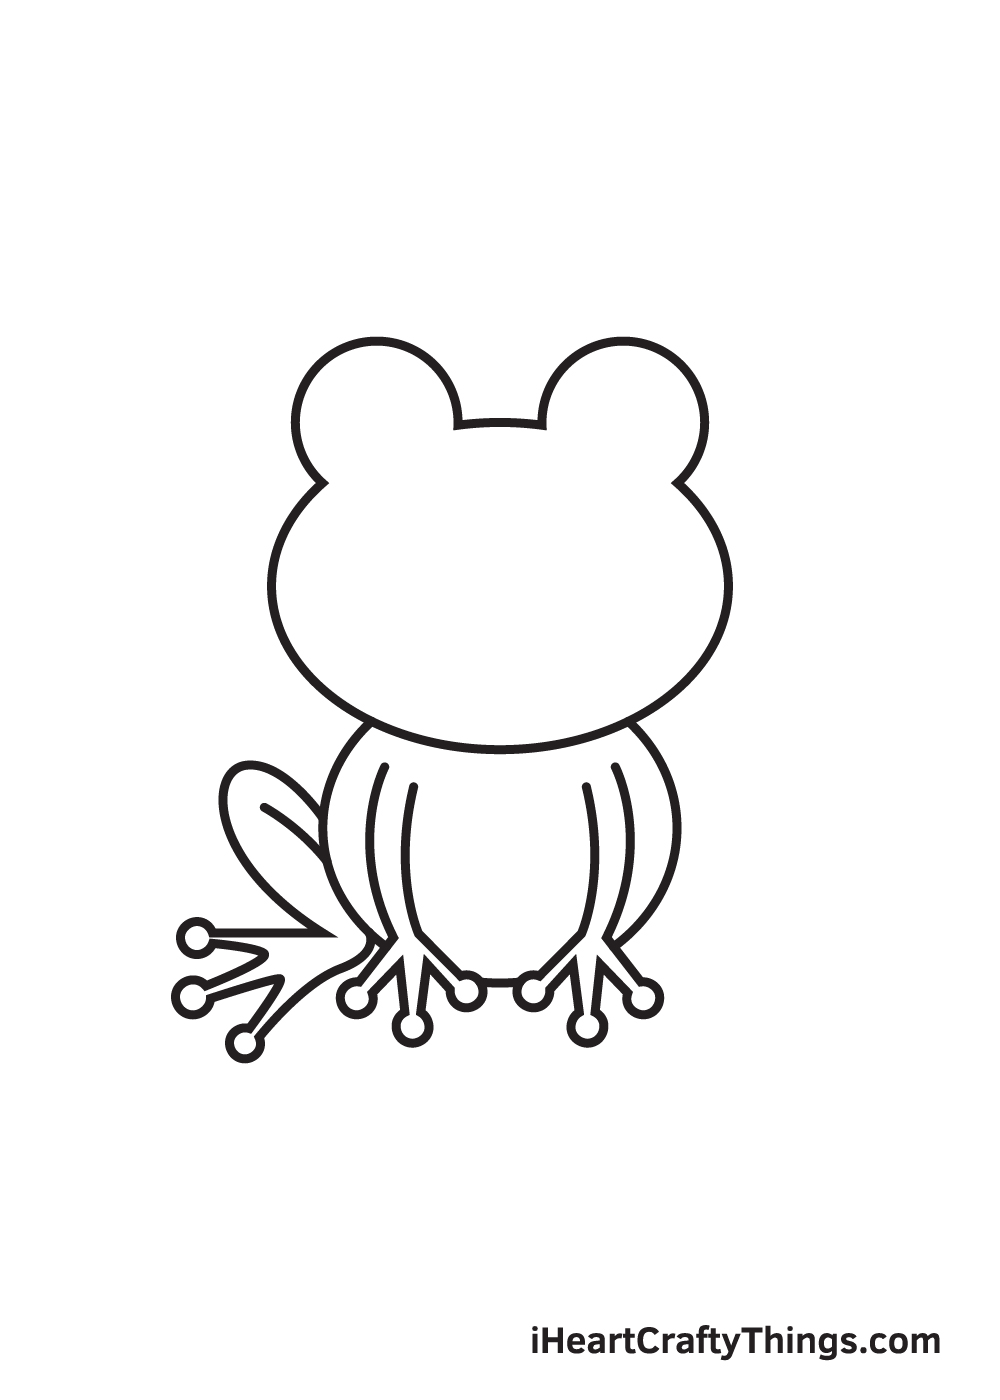 Frog Drawing – Step 5